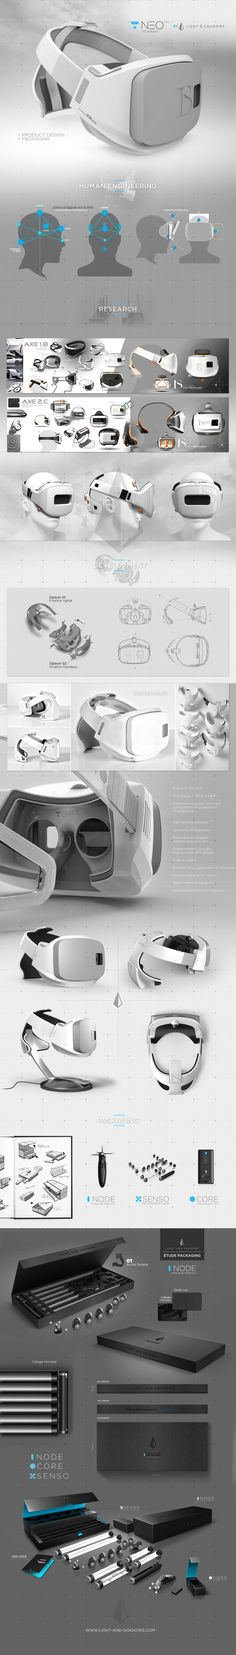 generation of Virtual Reality HMD for professionals.VR headset - -New generation of Virtual Reality HMD for professionals. Industrial Design Portfolio, Industrial Design Sketch, Portfolio Design, Cafe Industrial, Industrial Bookshelf, Industrial Office, Industrial Restaurant, Industrial Furniture, Industrial Apartment